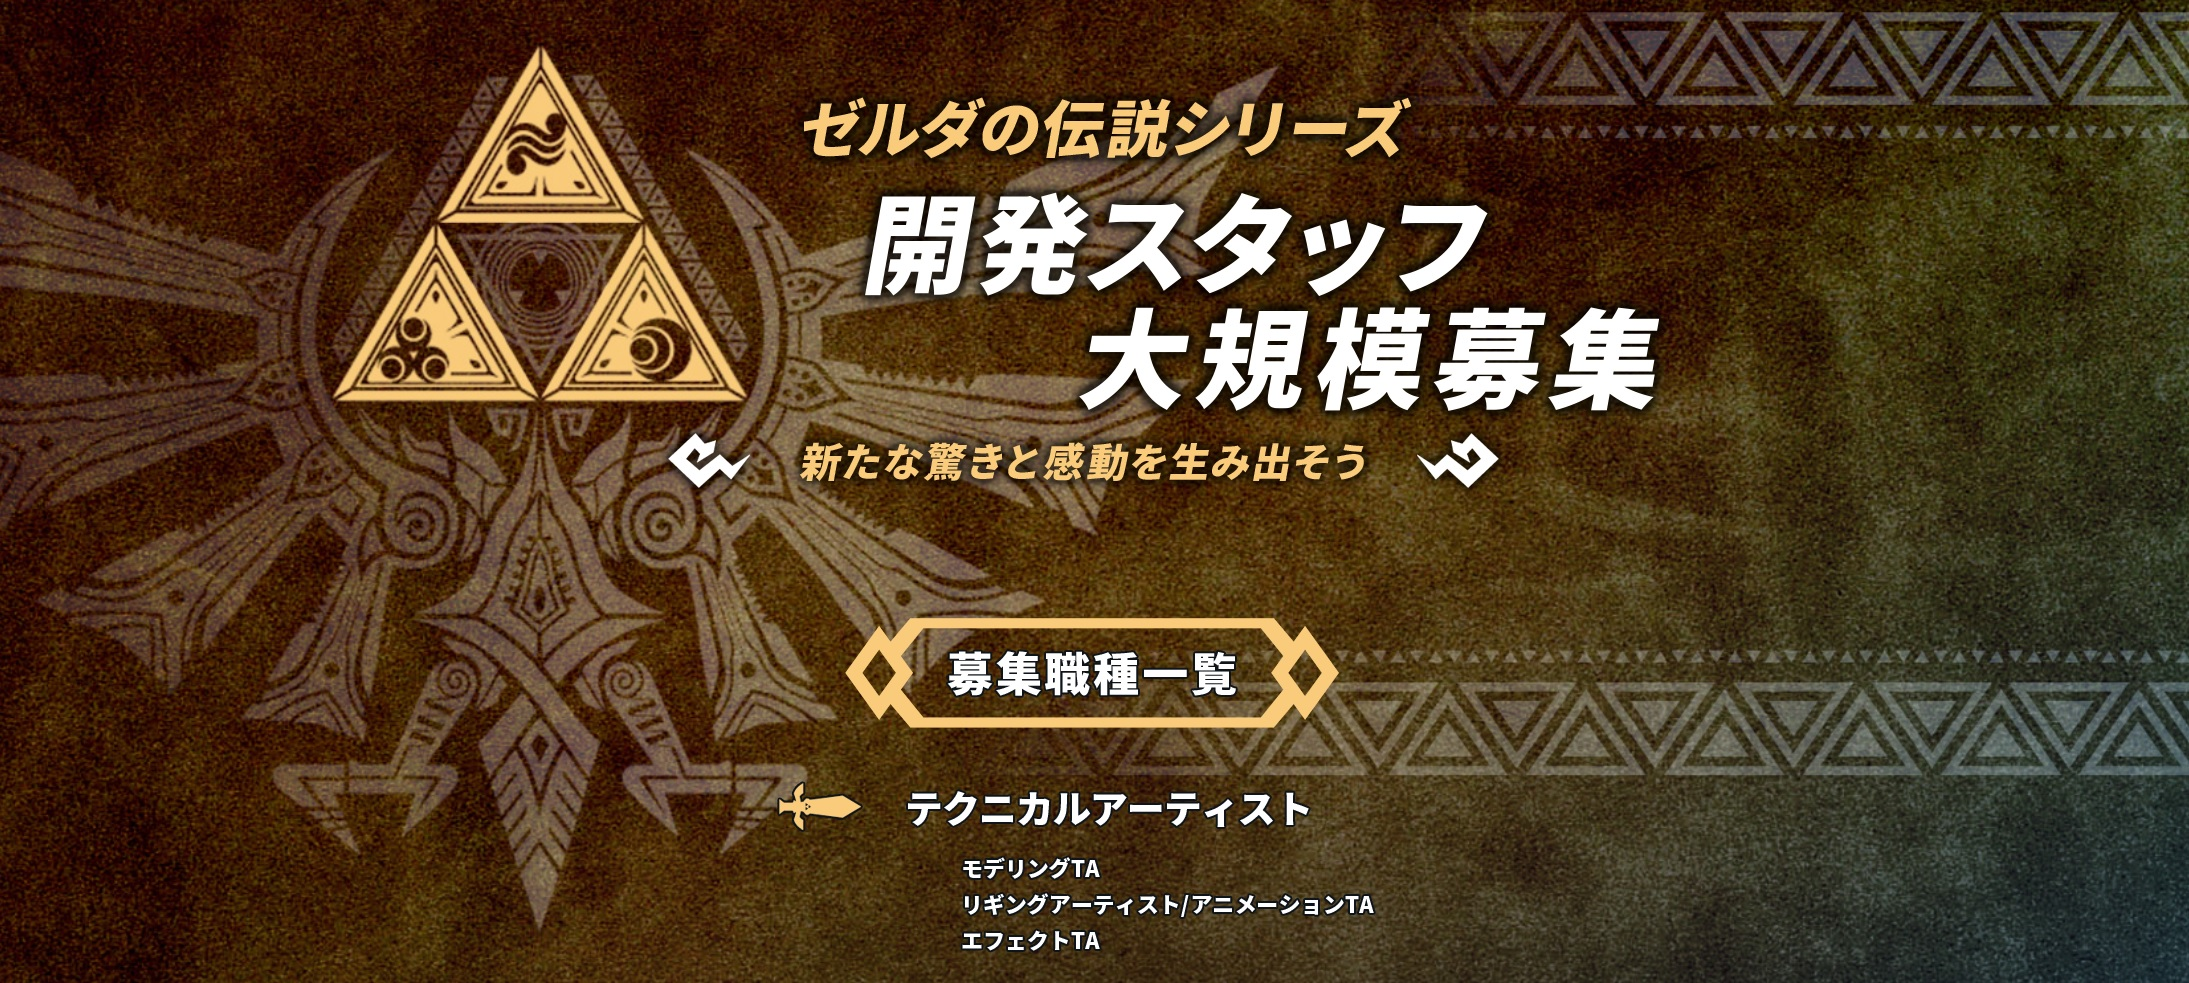 The studio behind Xenoblade is recruiting for a new Zelda project